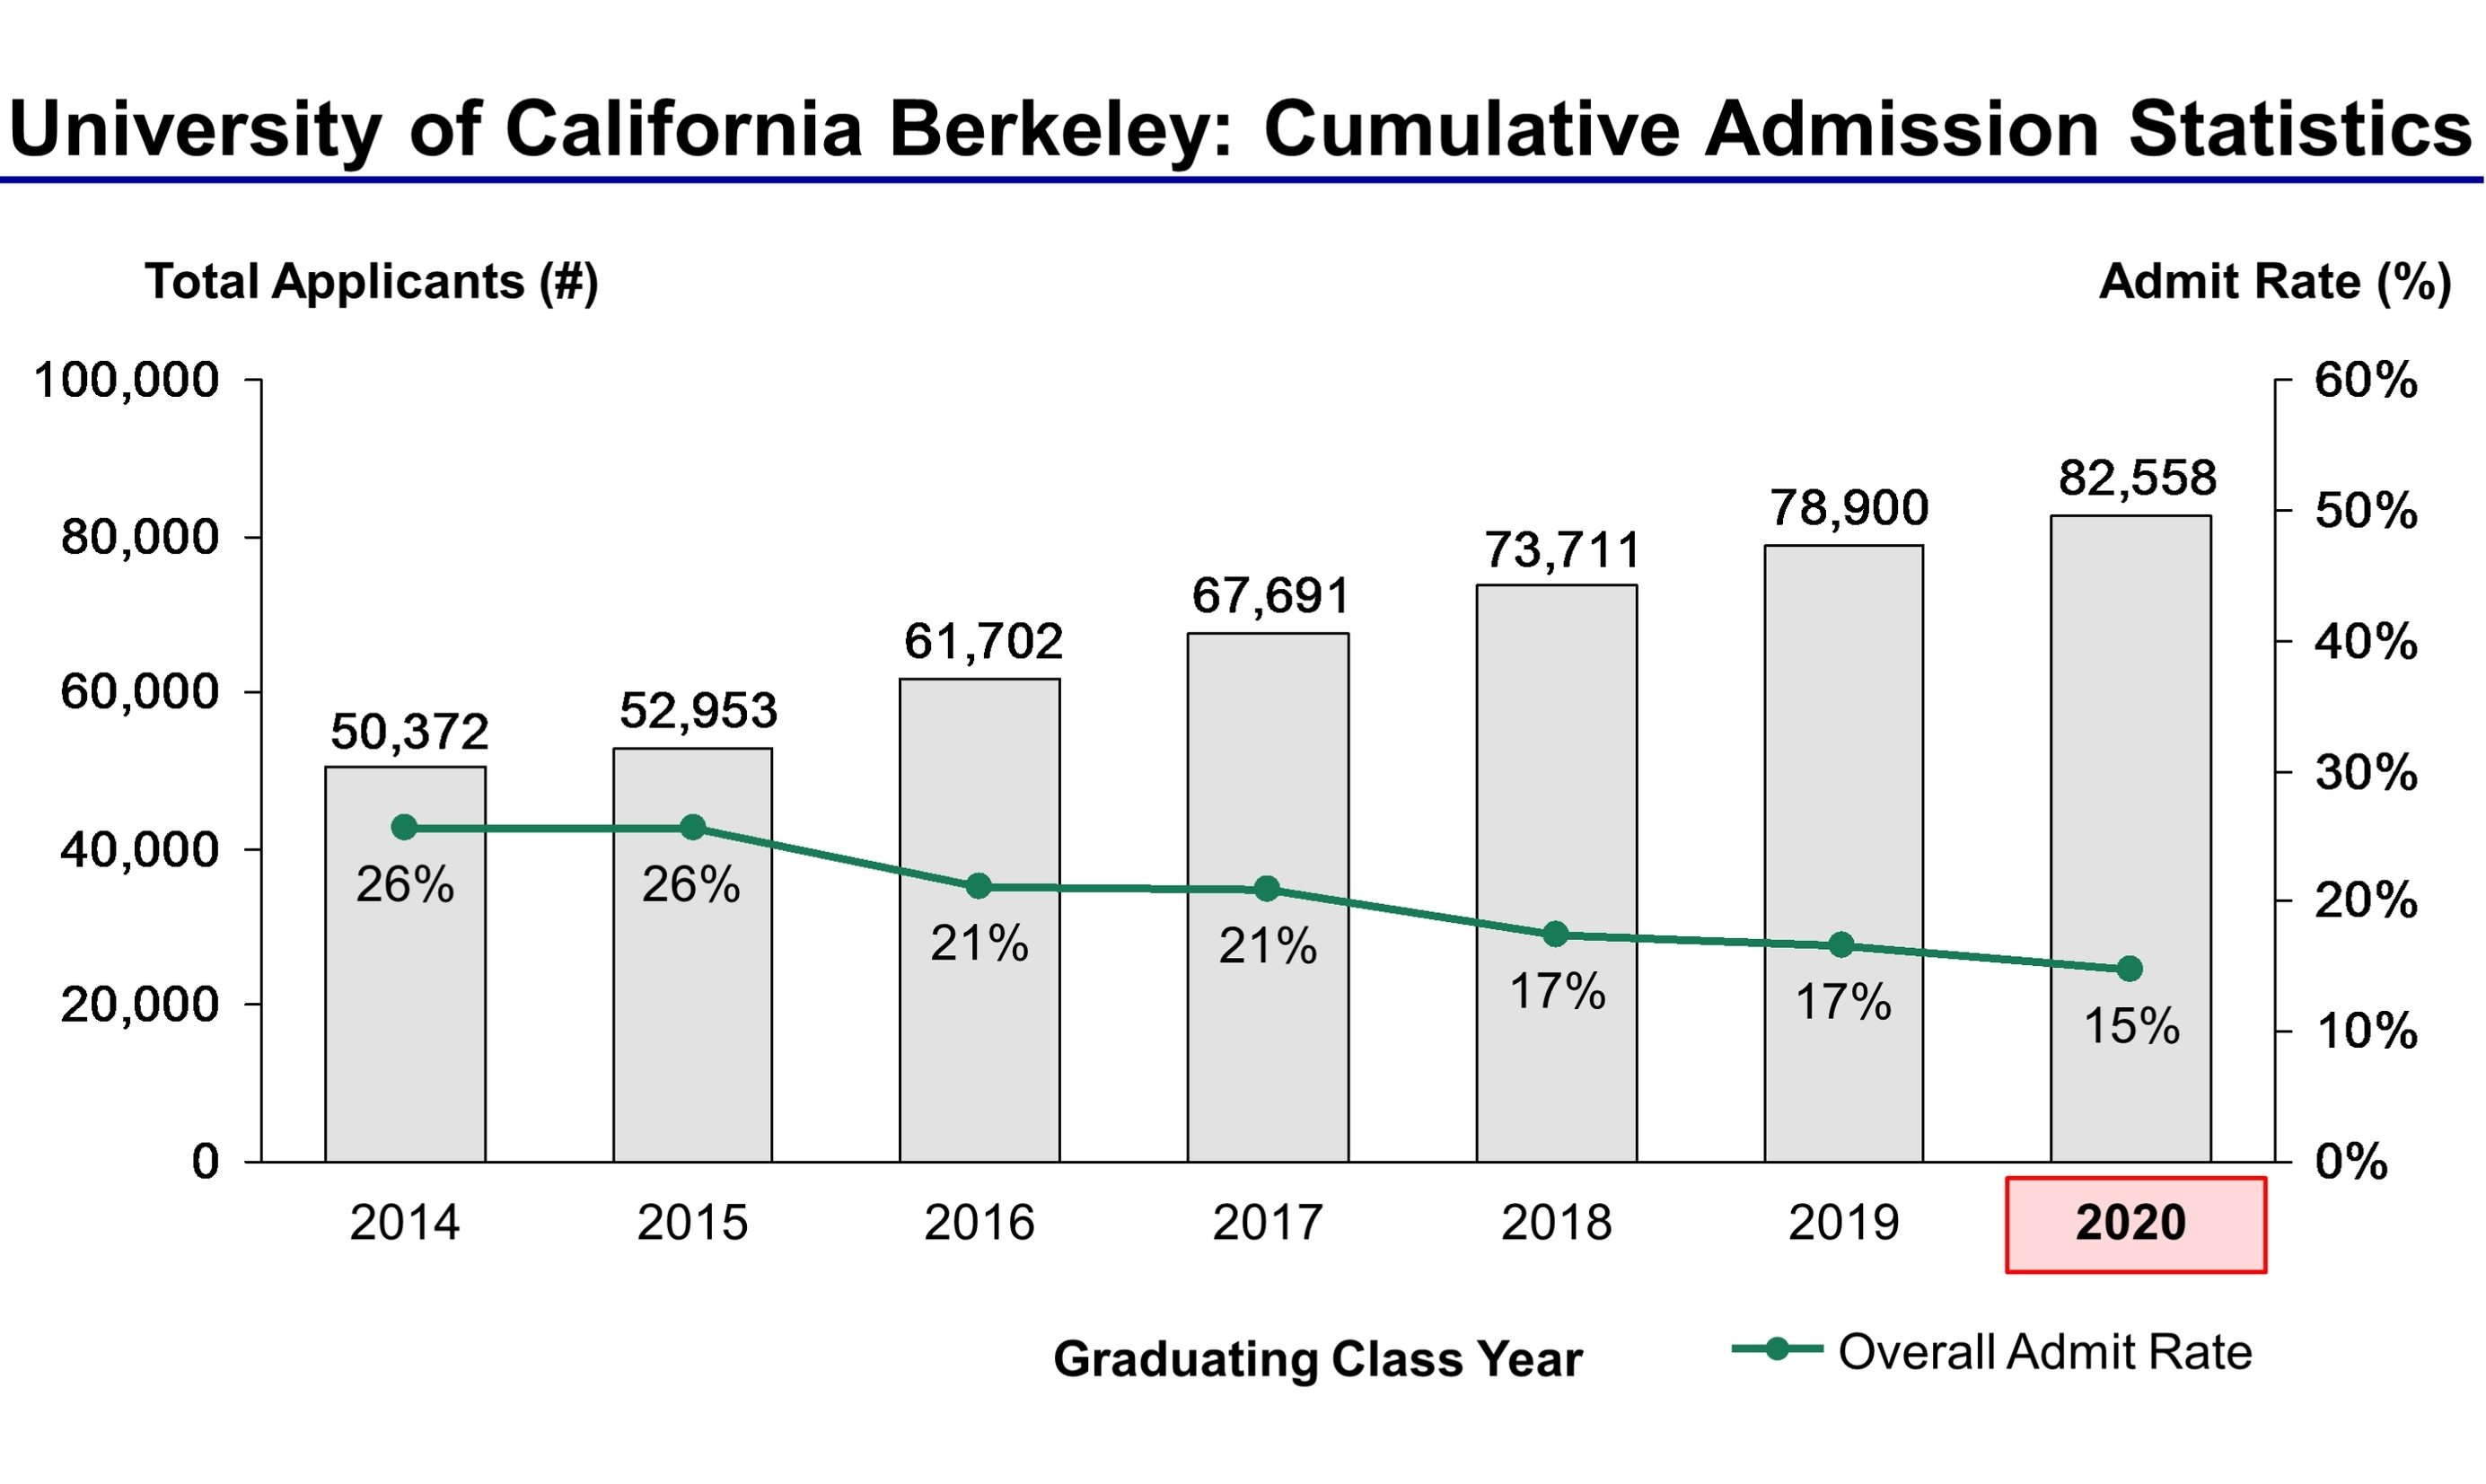 uc berkley admissions essay How to write the uc berkeley/university of california application essays 2016-2017 from san diego to berkeley uc berkeley collegevine 125 cambridge park dr.